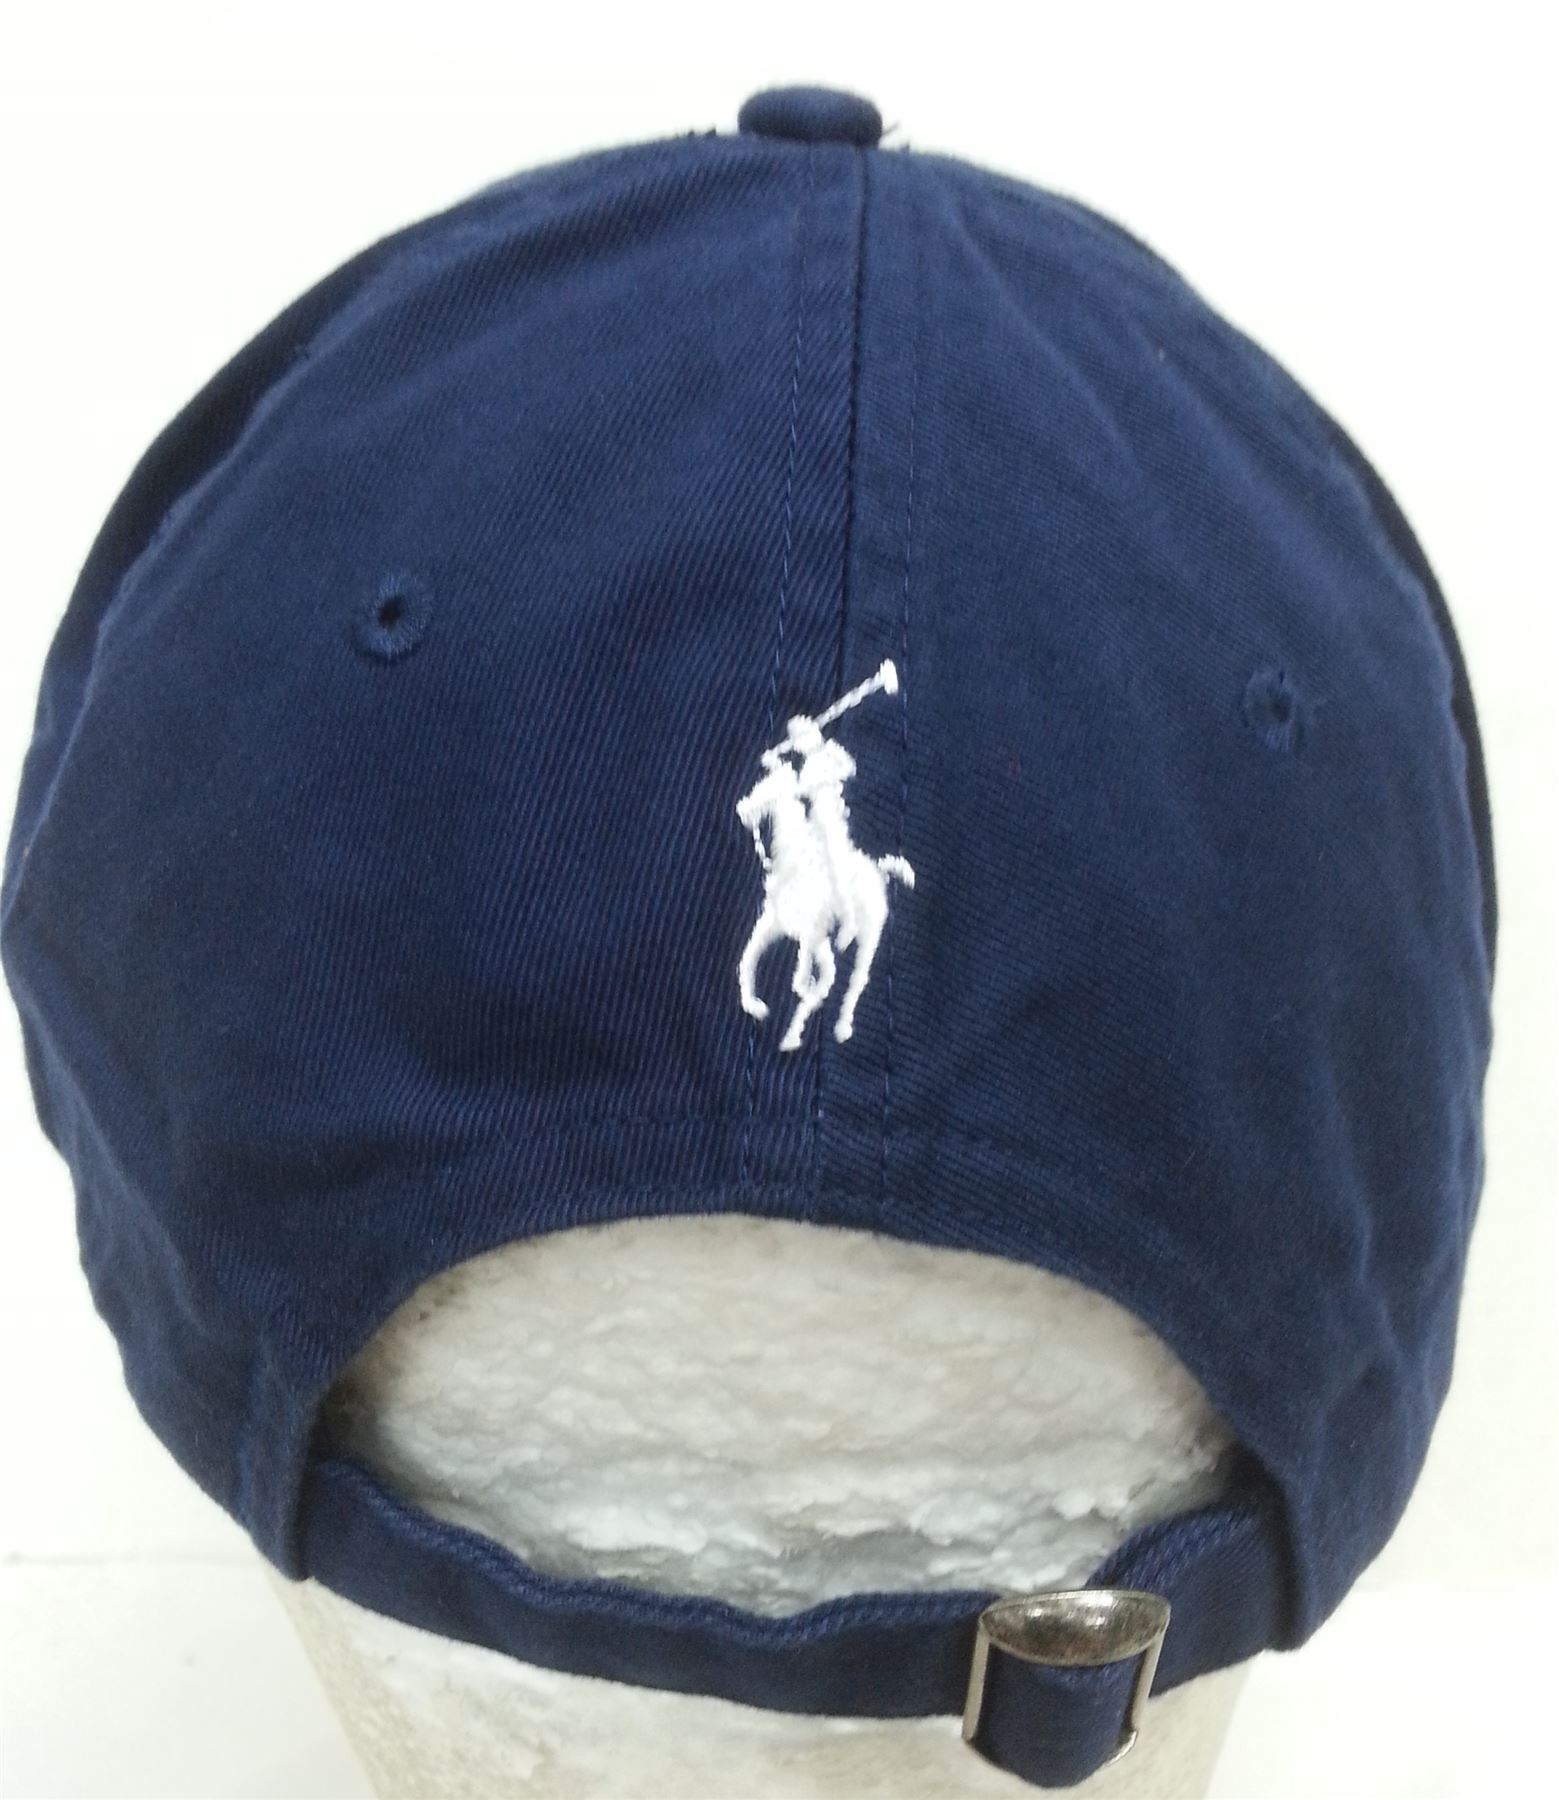 f7ae648e LIMITED EDITION* Polo Ralph Lauren US OPEN Hats & Baseball Caps | eBay